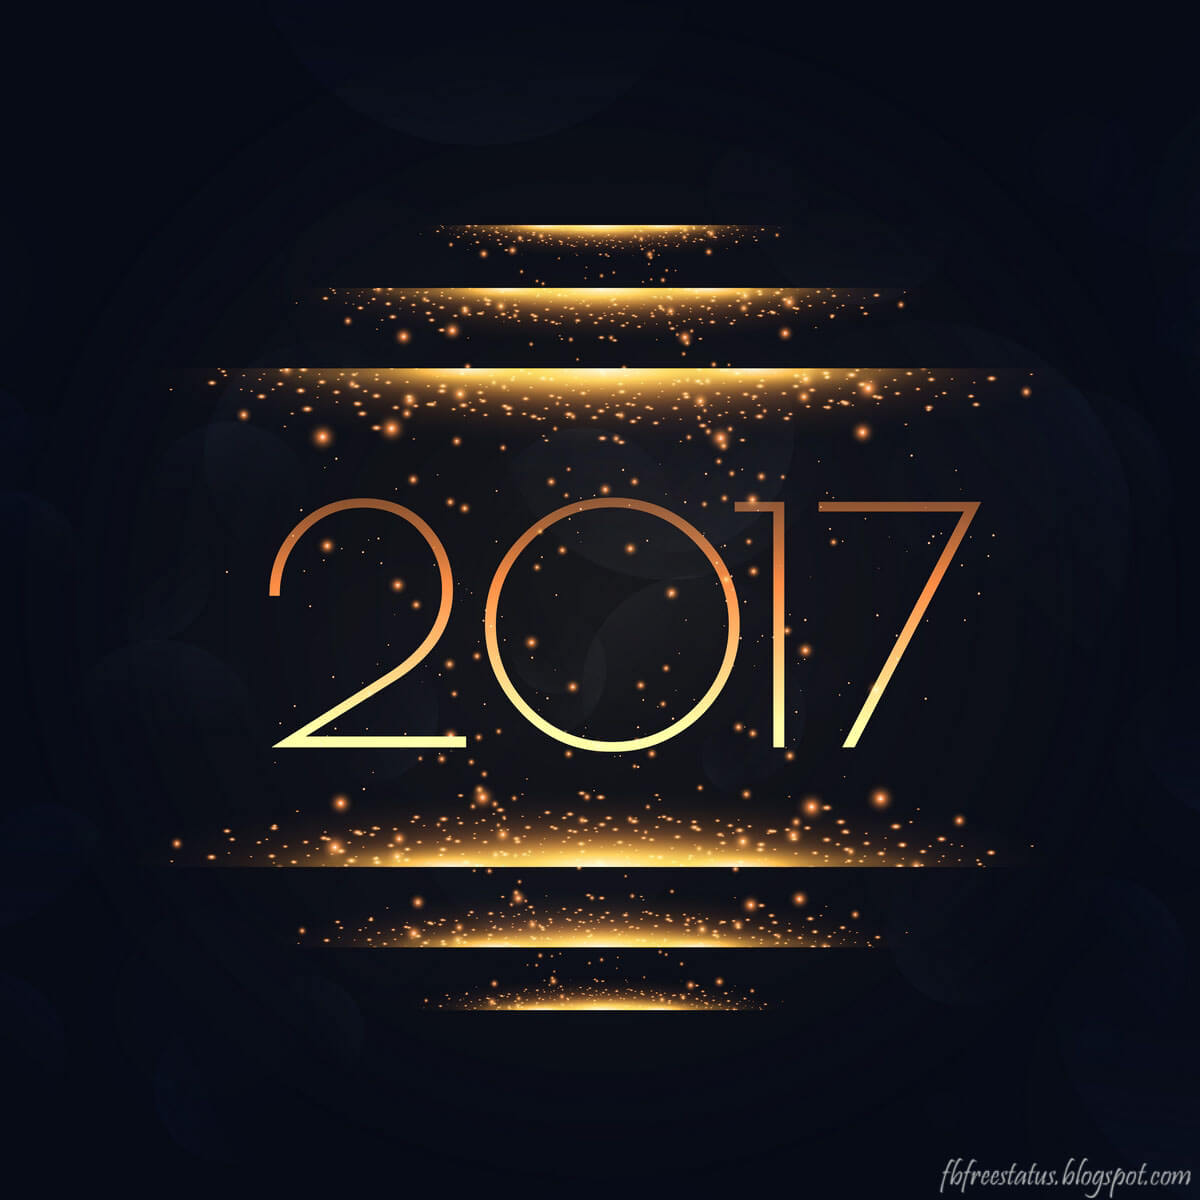 New Year Eve images and Wishes 2017